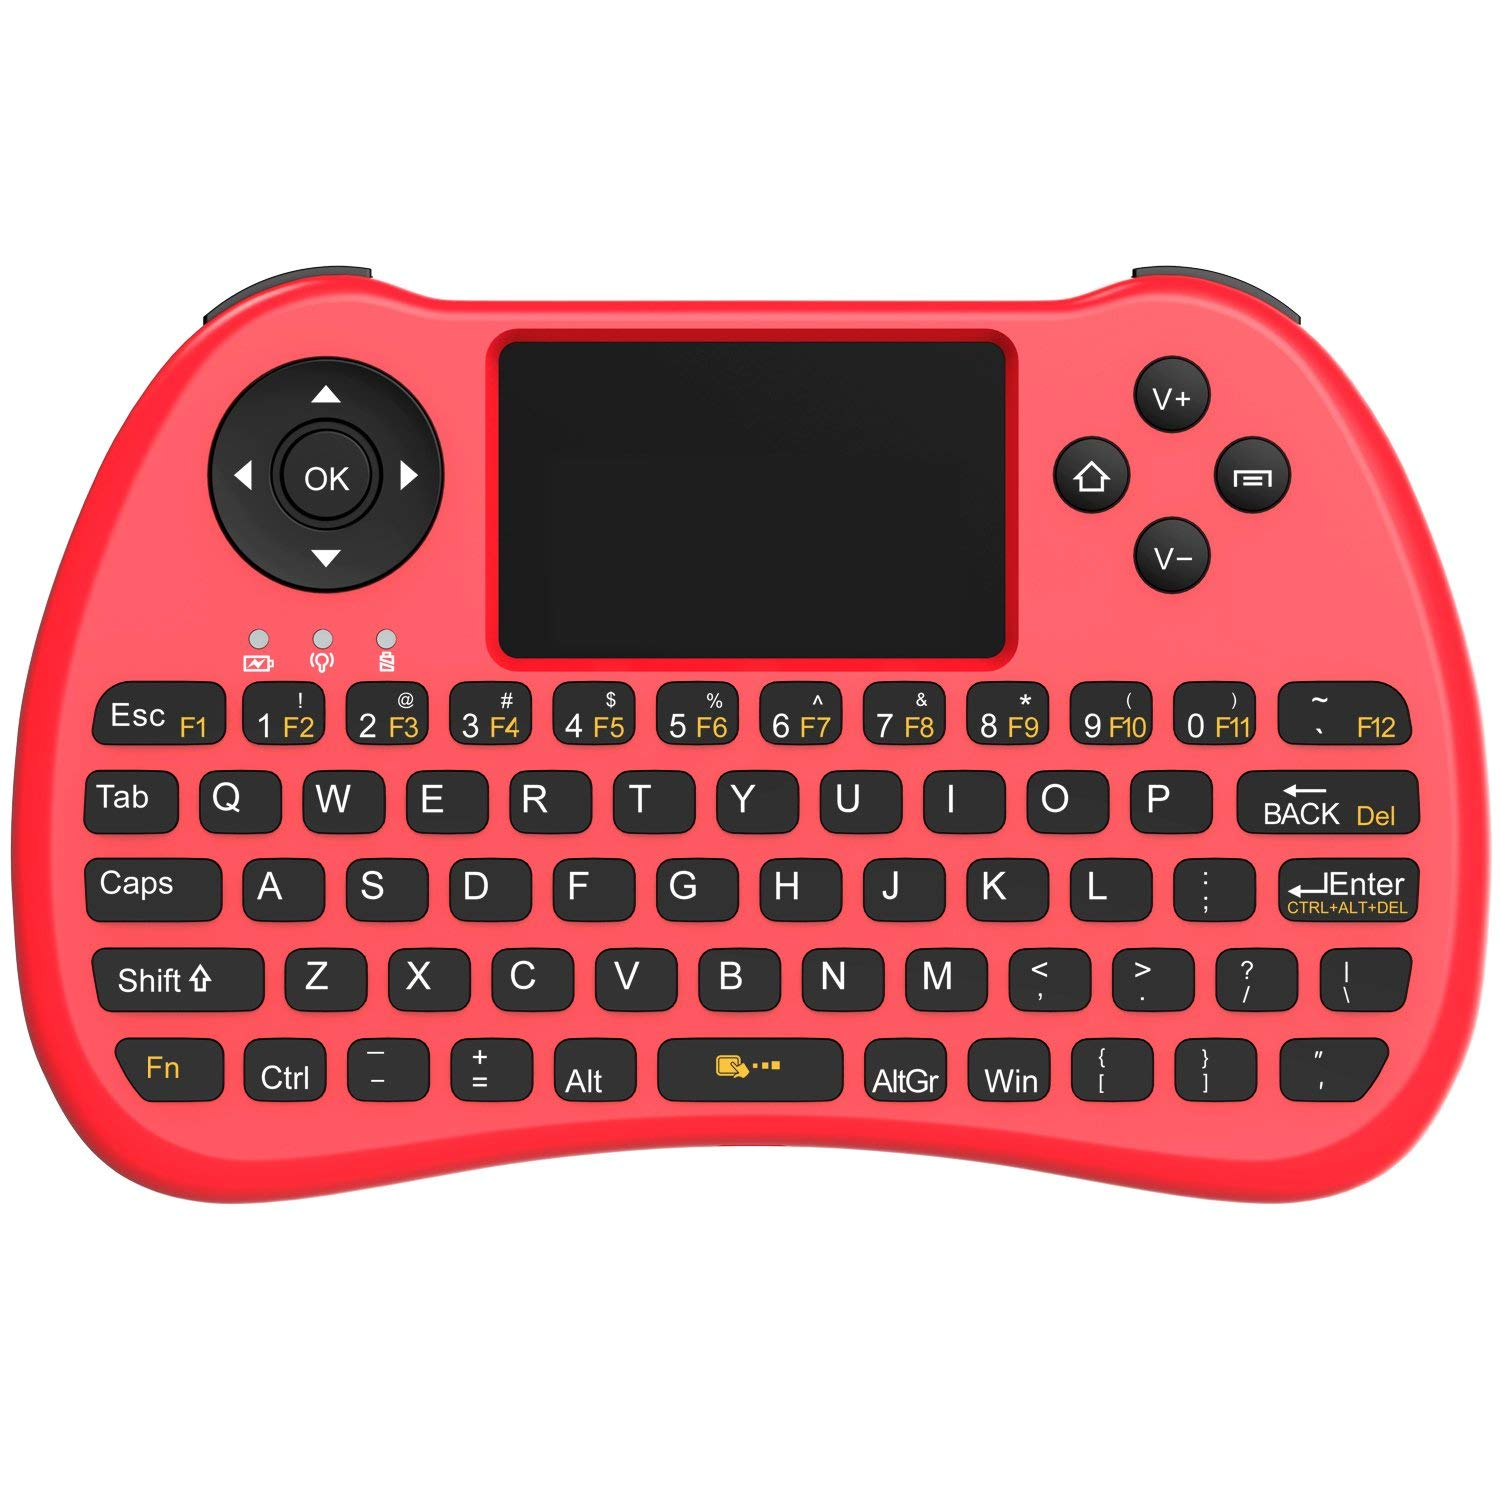 Aerb 2.4GHz Mini Wireless Keyboard with Mouse Touchpad Rechargeable Combos for PC, Pad, Google Android TV Box and More (Red)